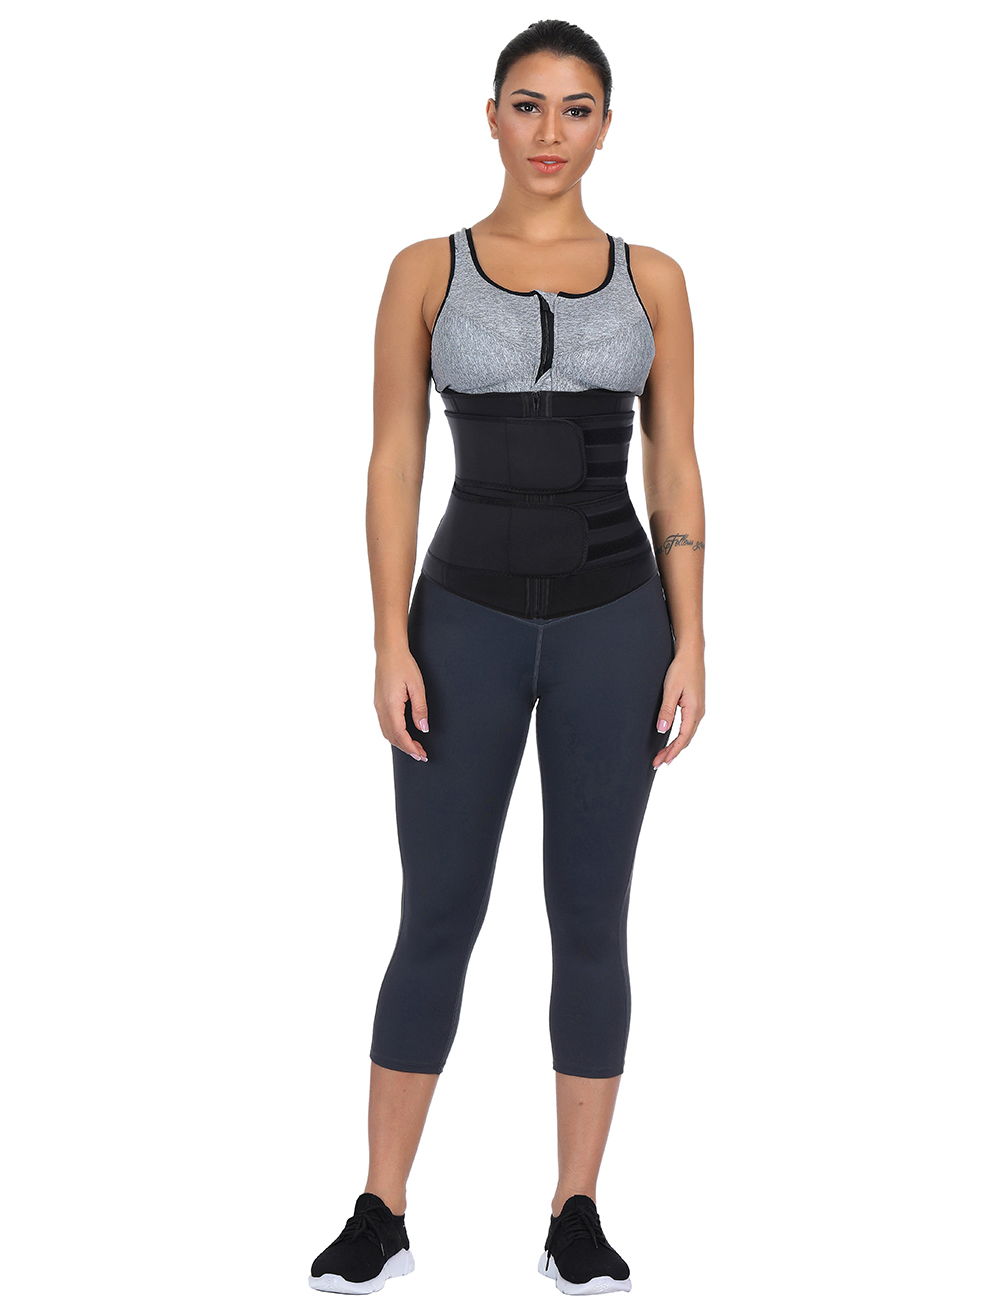 //cdn.affectcloud.com/hexinfashion/upload/imgs/Shaper/Waist_Trainer/B195063-BK1/B195063-BK1-201911065dc2507020424.jpg